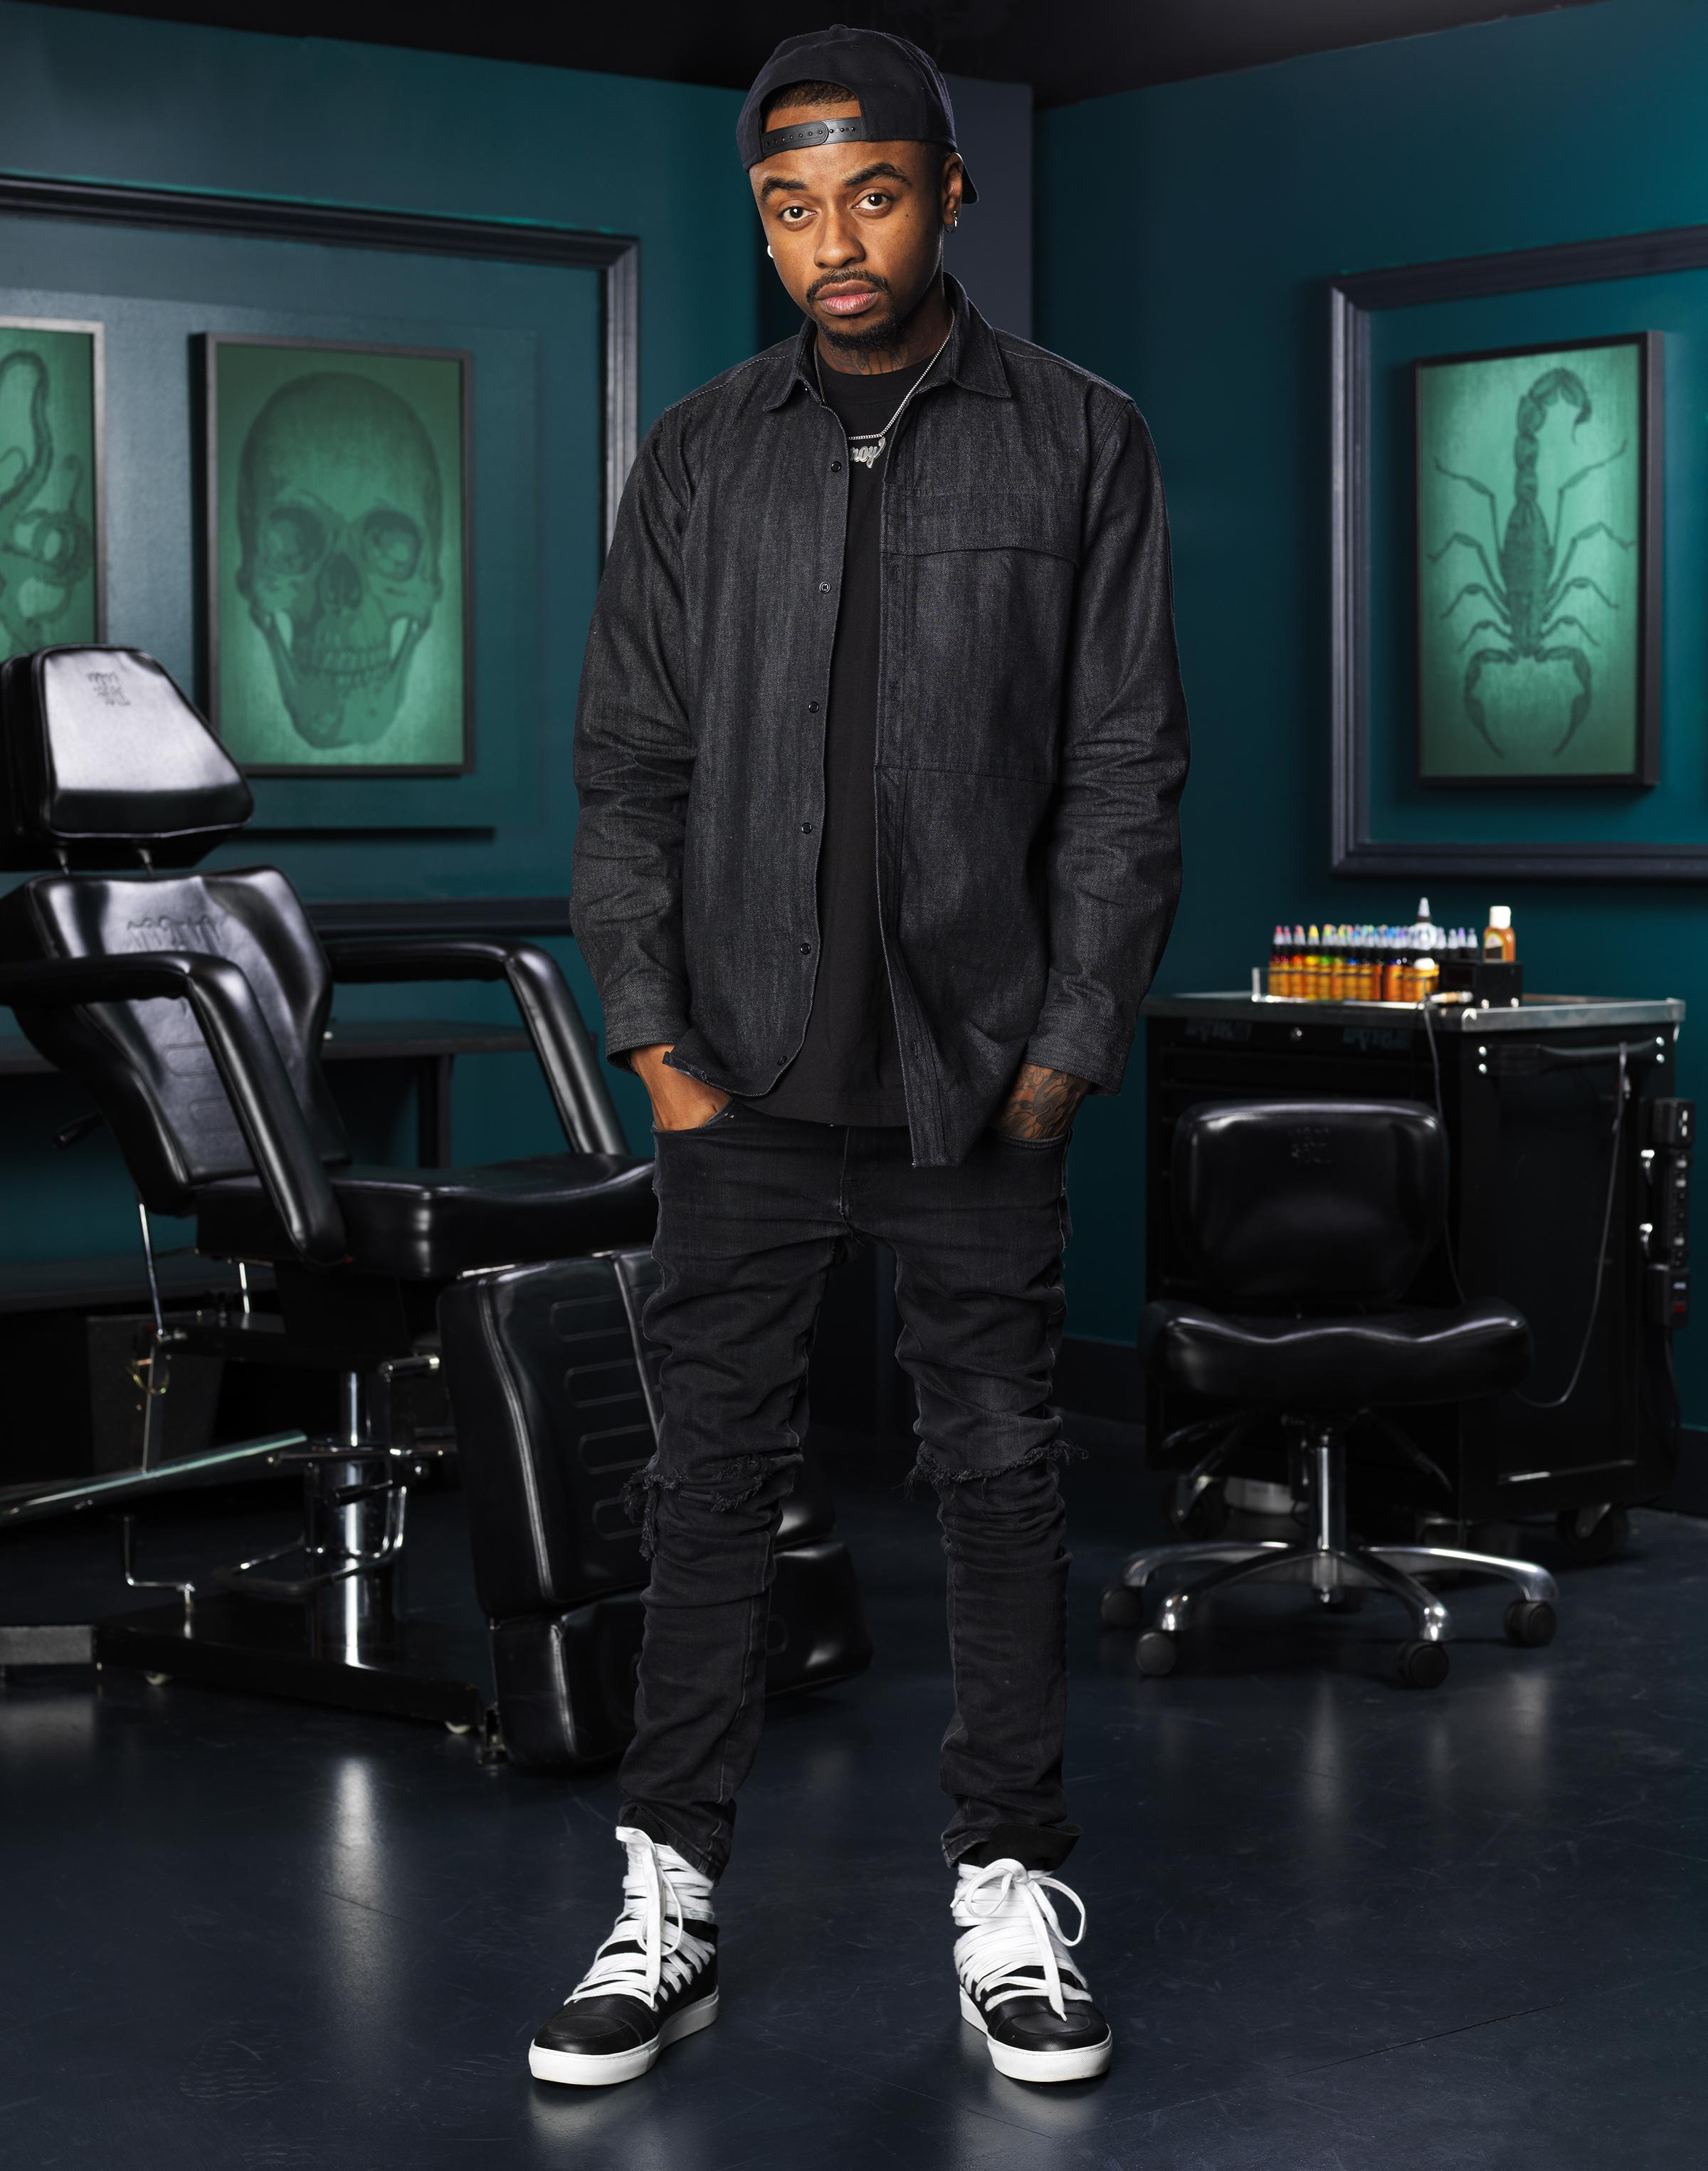 Ink Master' Season 8 Spoilers: Who Is Eliminated In Episode 5